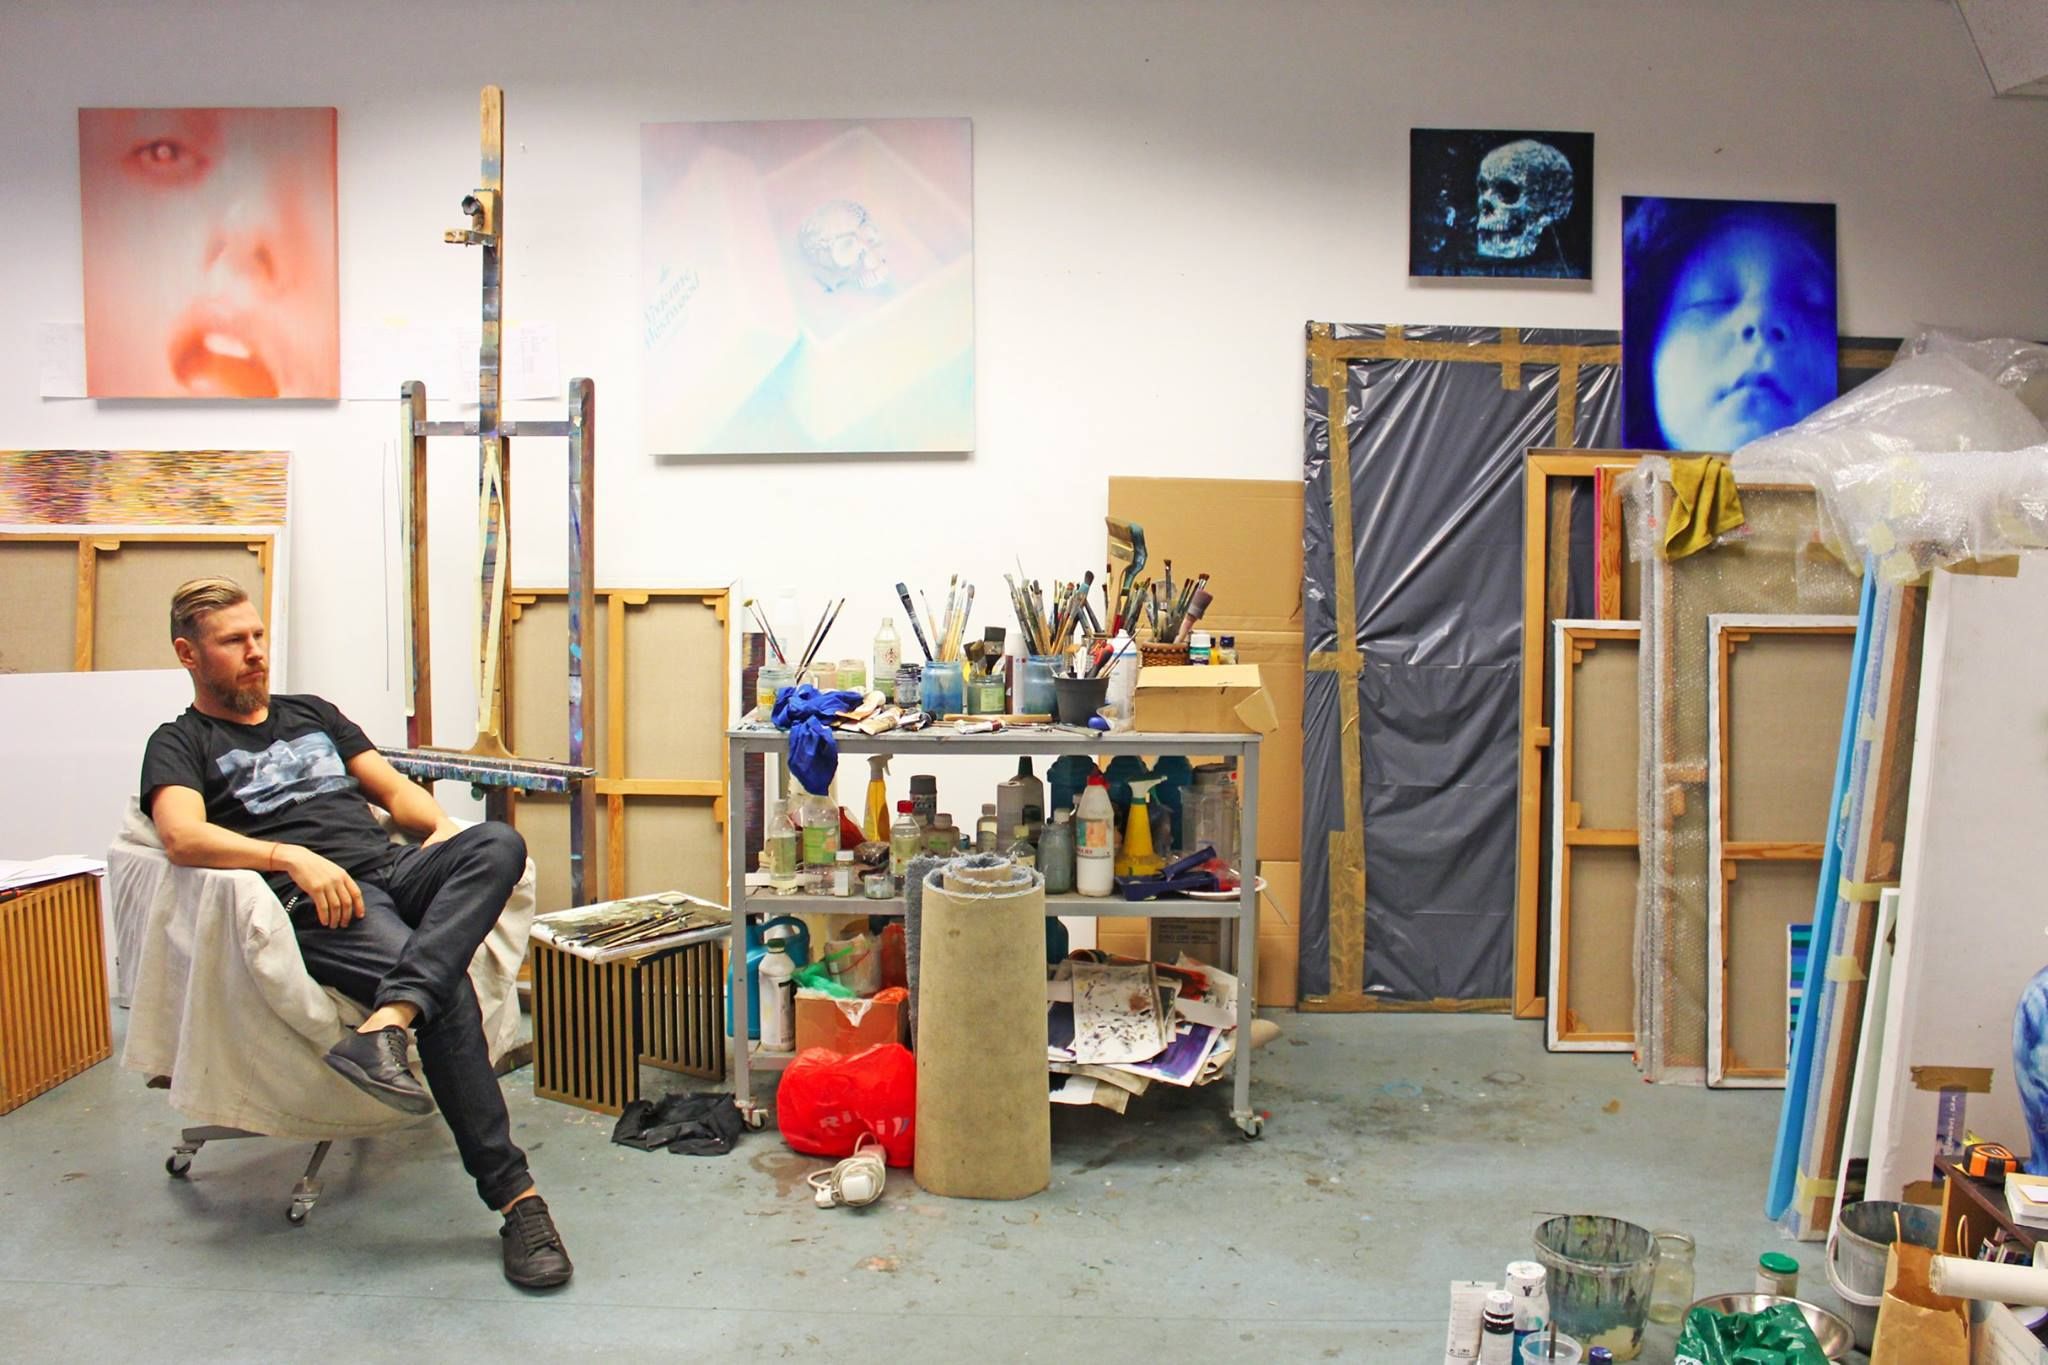 Ritums relaxing in his studio wearing the Tshirt in support of the future art museum